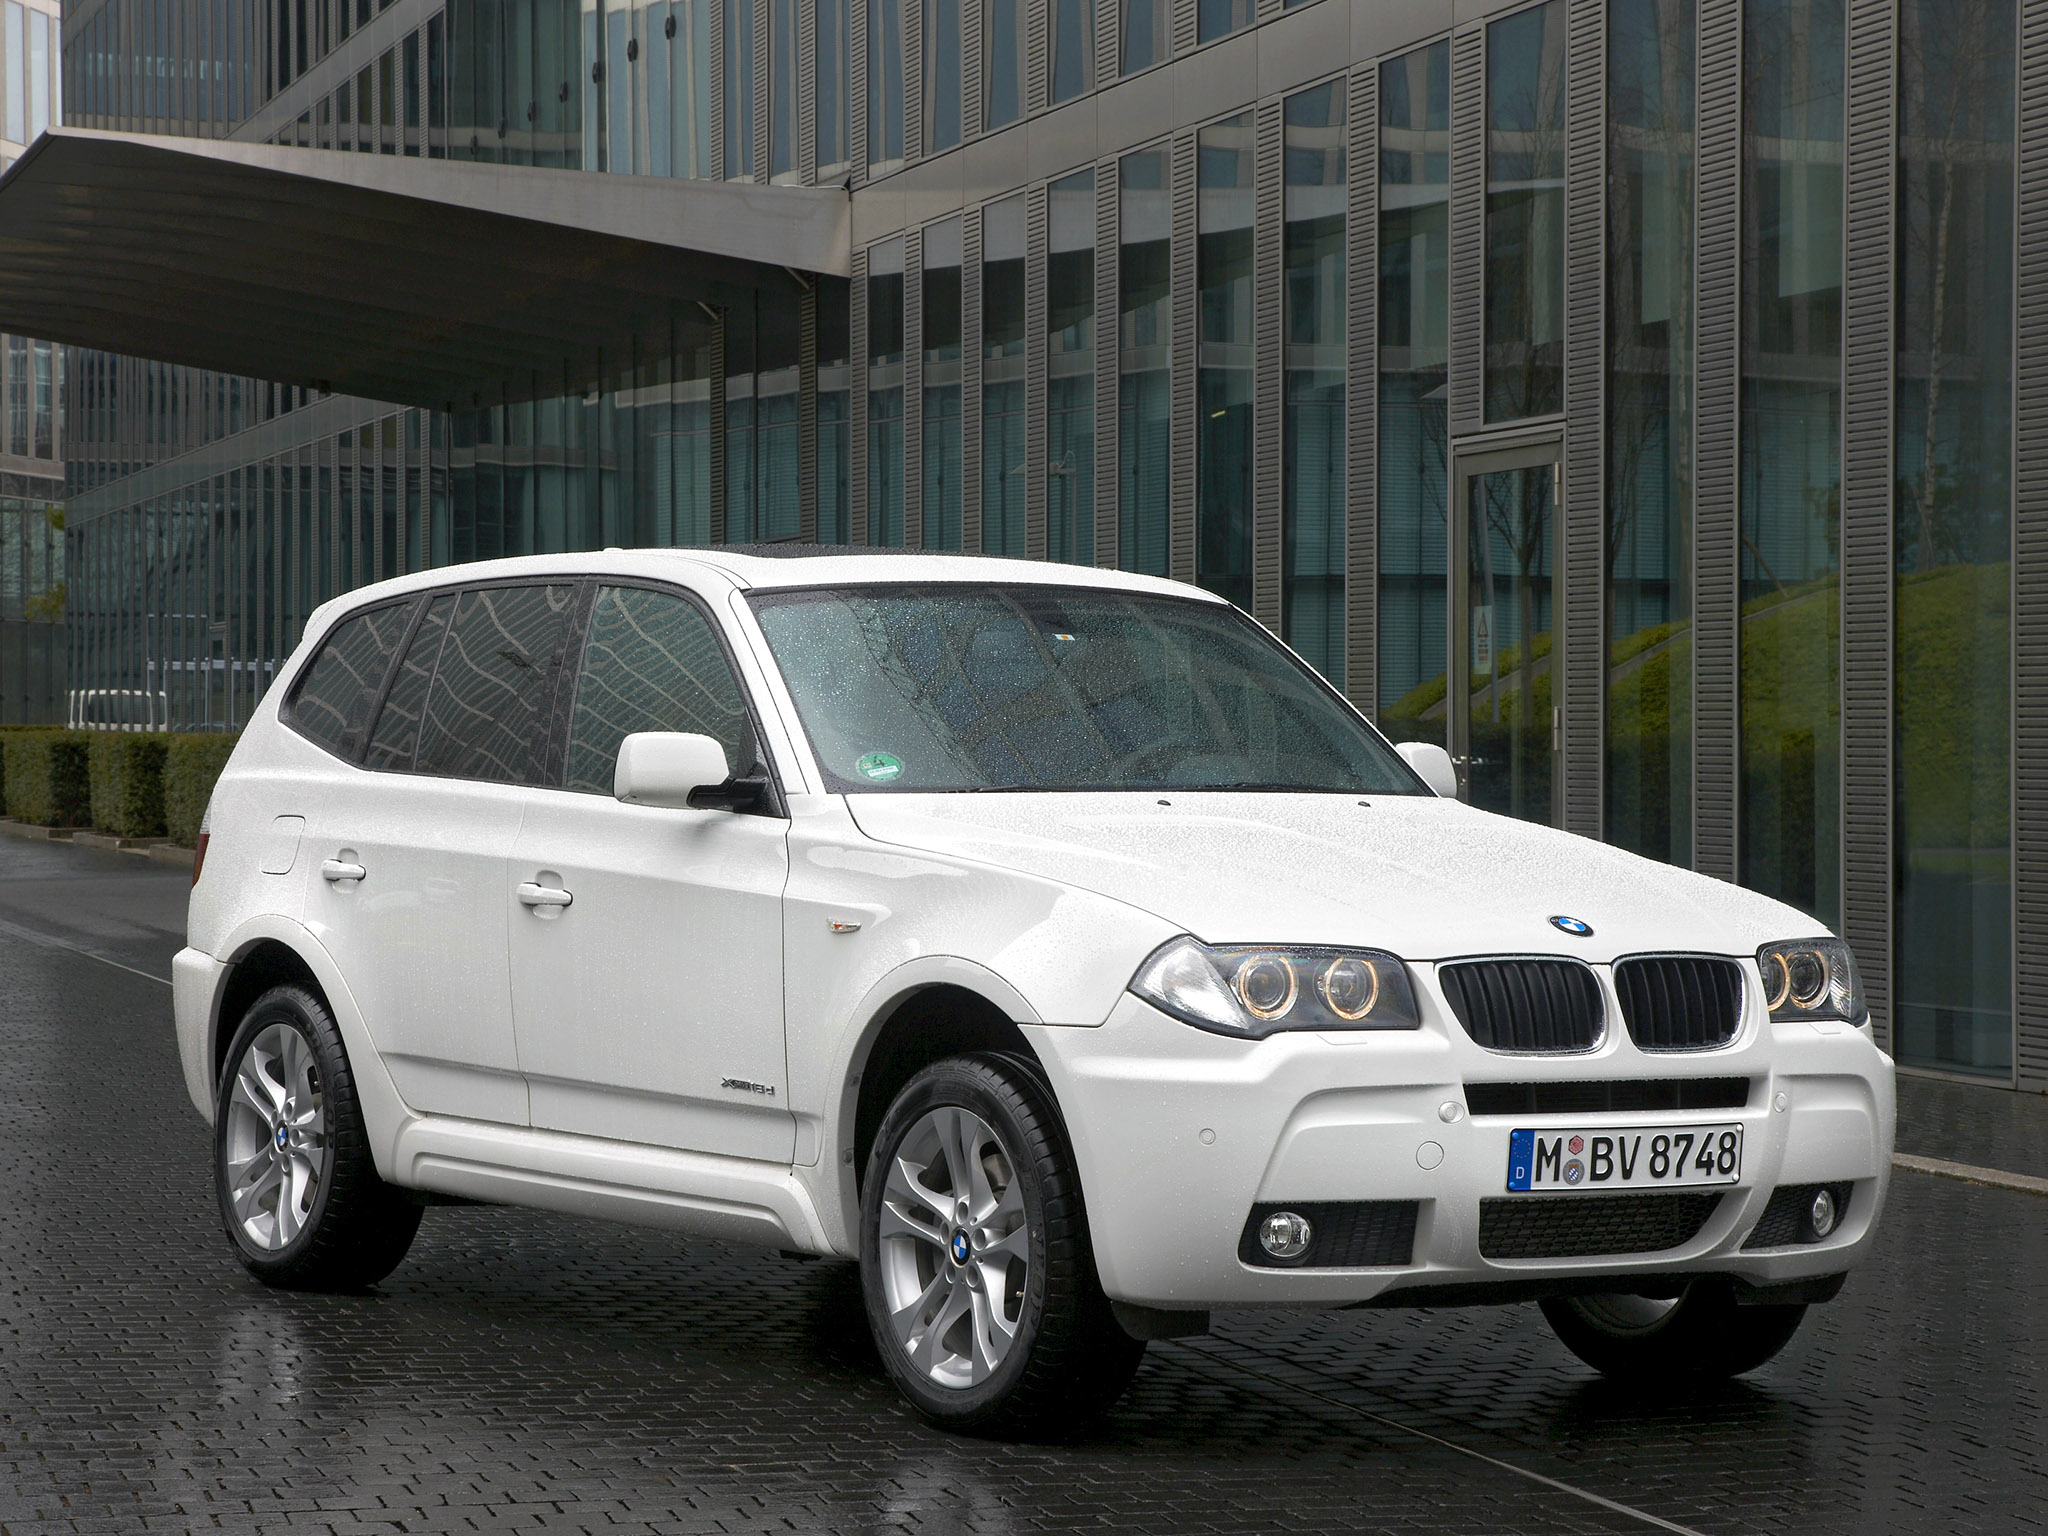 bmw x3 xdrive e83 2009 bmw x3 xdrive e83 2009 photo 14 car in pictures car photo gallery. Black Bedroom Furniture Sets. Home Design Ideas